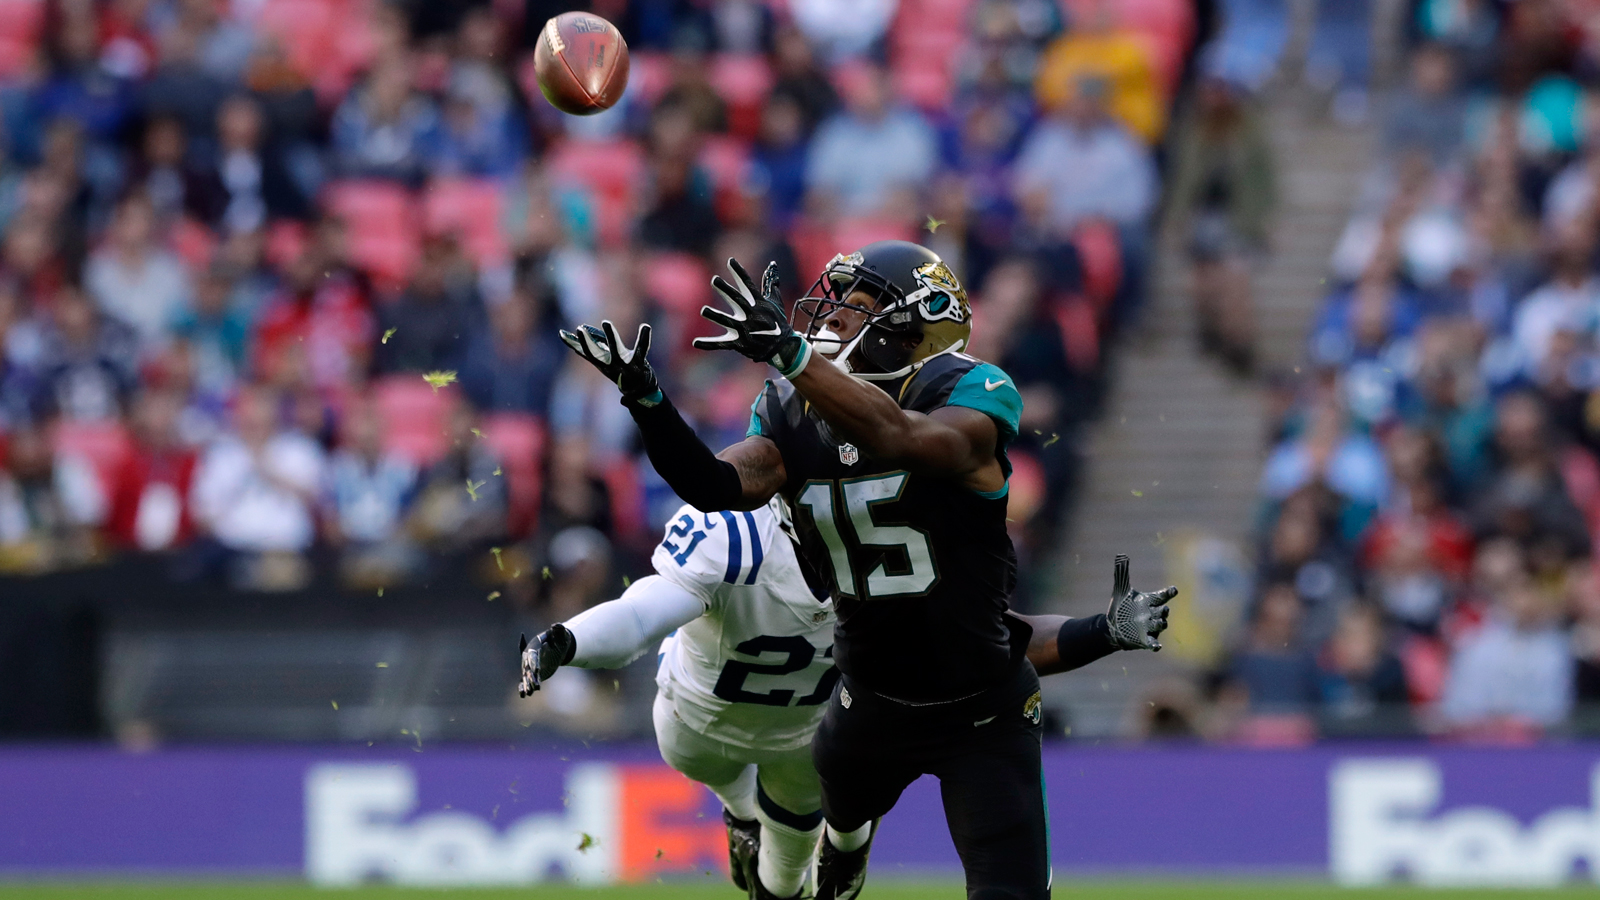 Jaguars withstand late rally, beat Colts in London for first victory